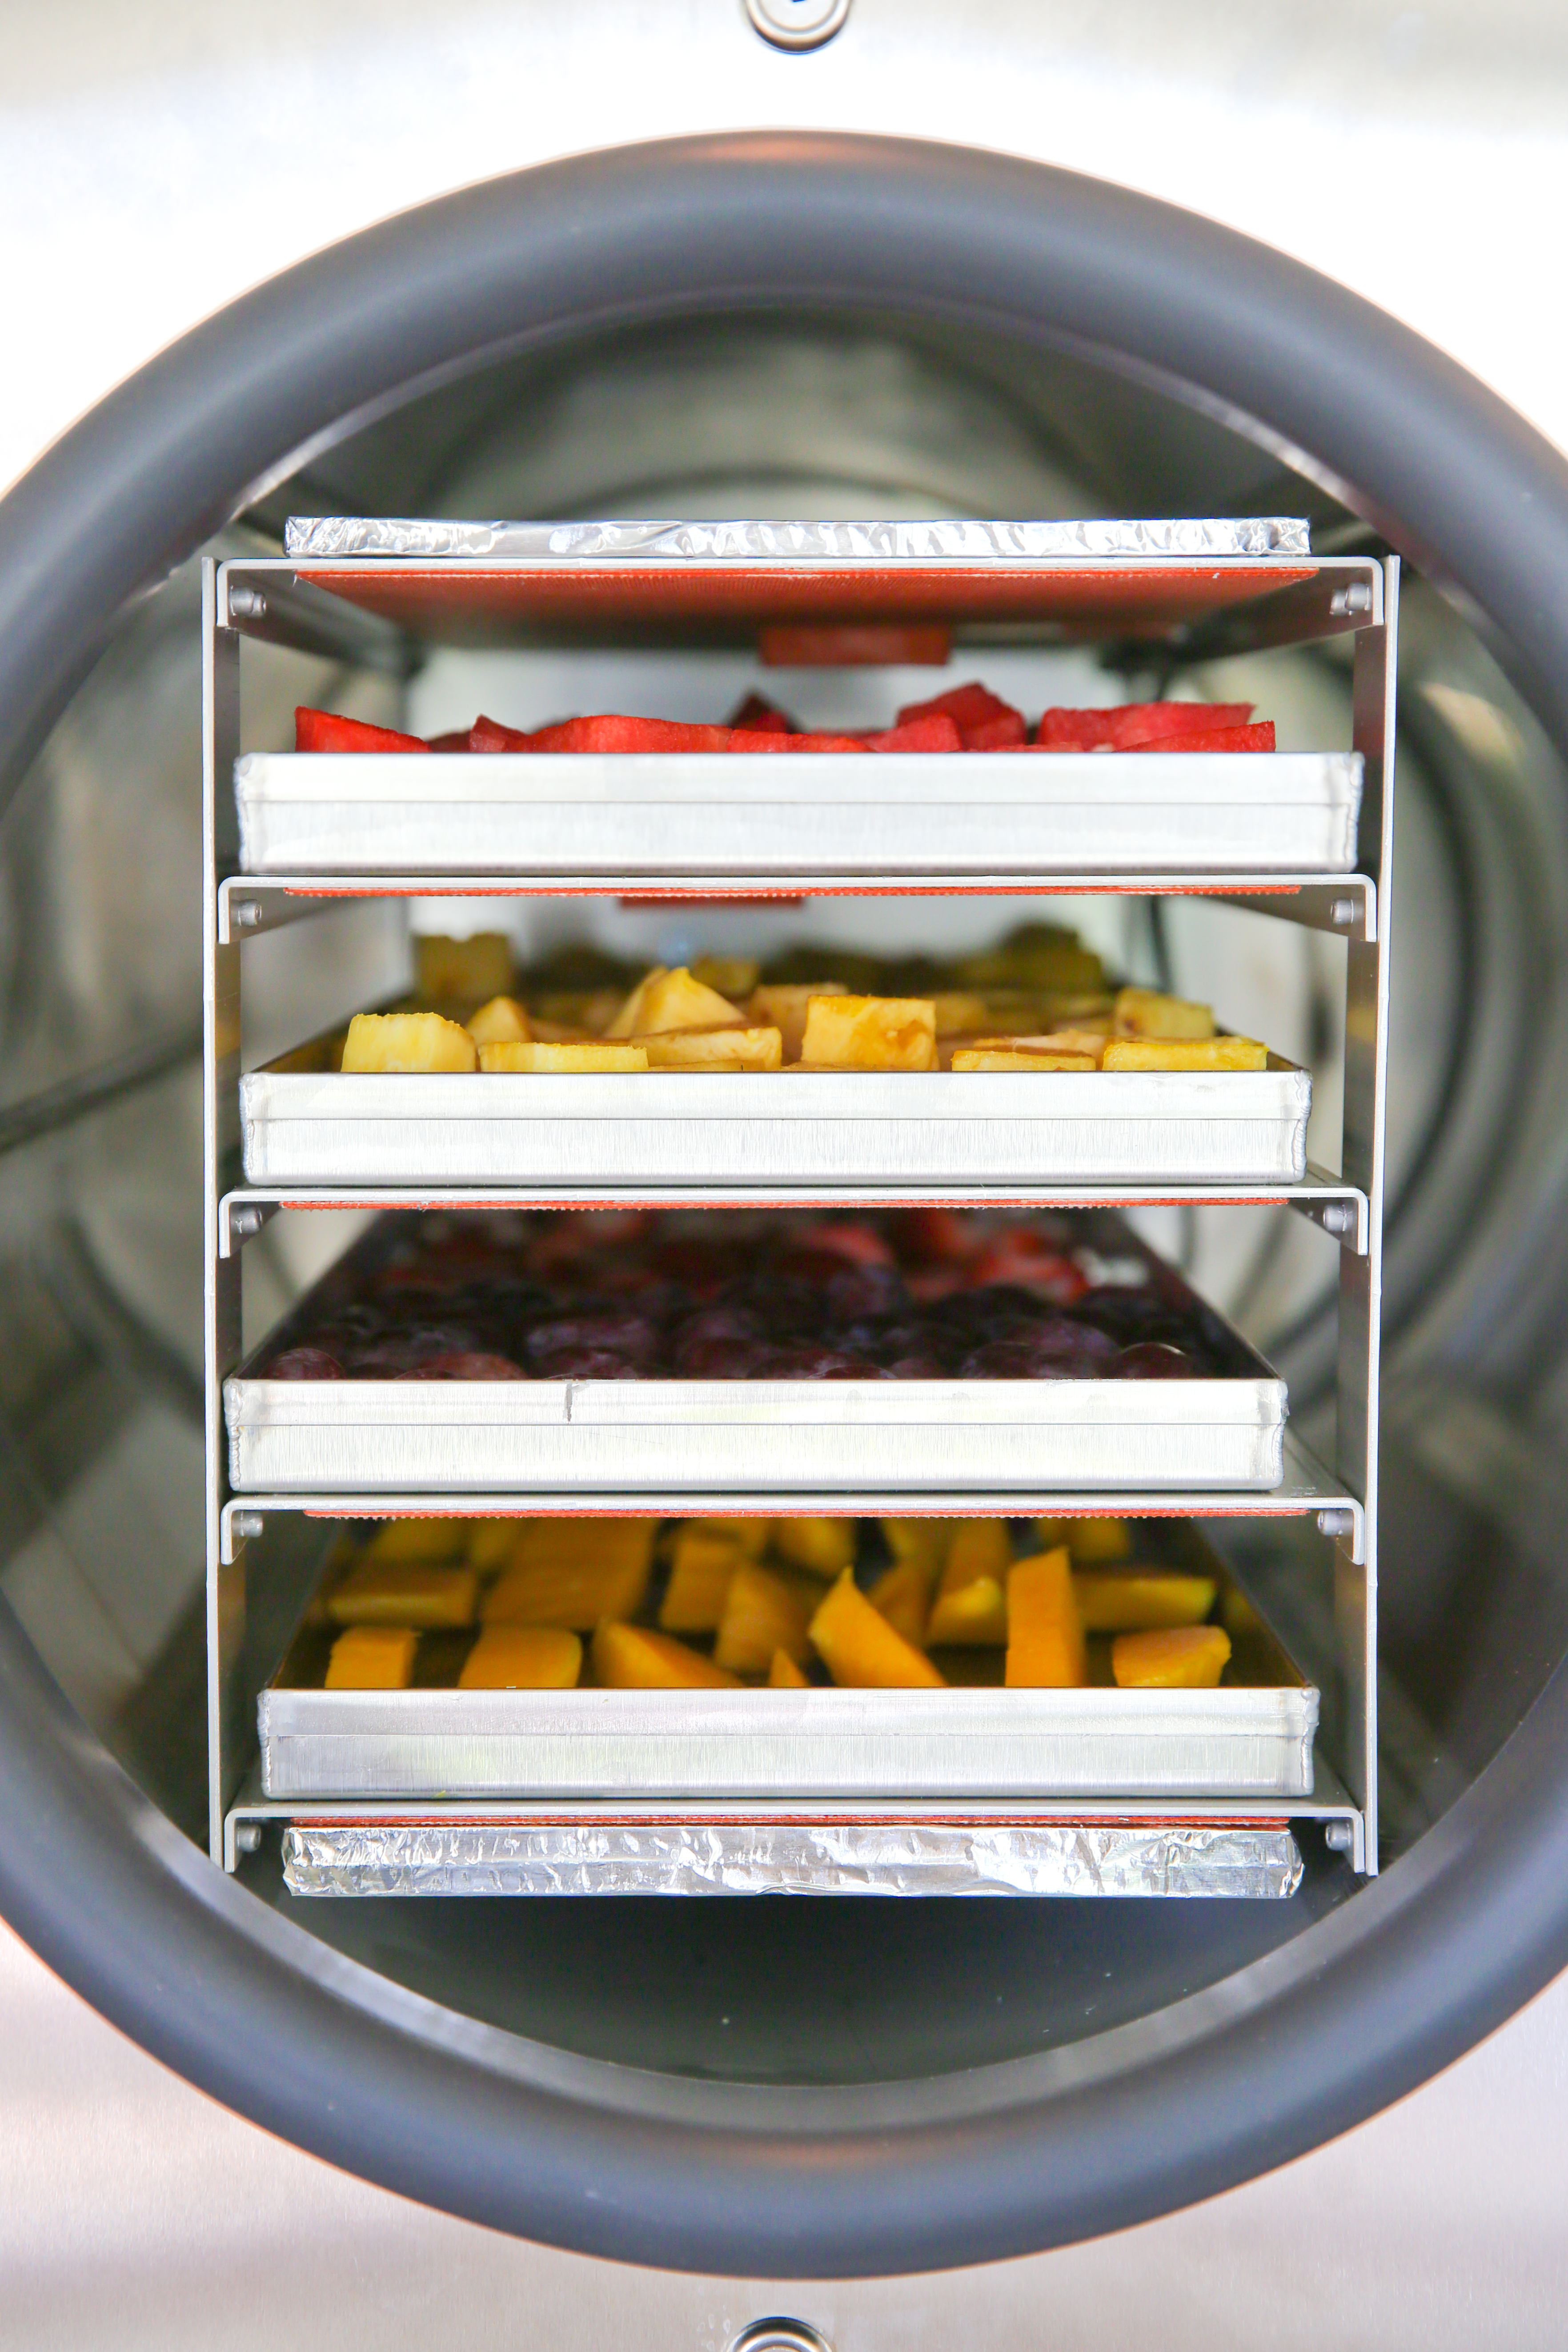 trays of food in a freeze dryer